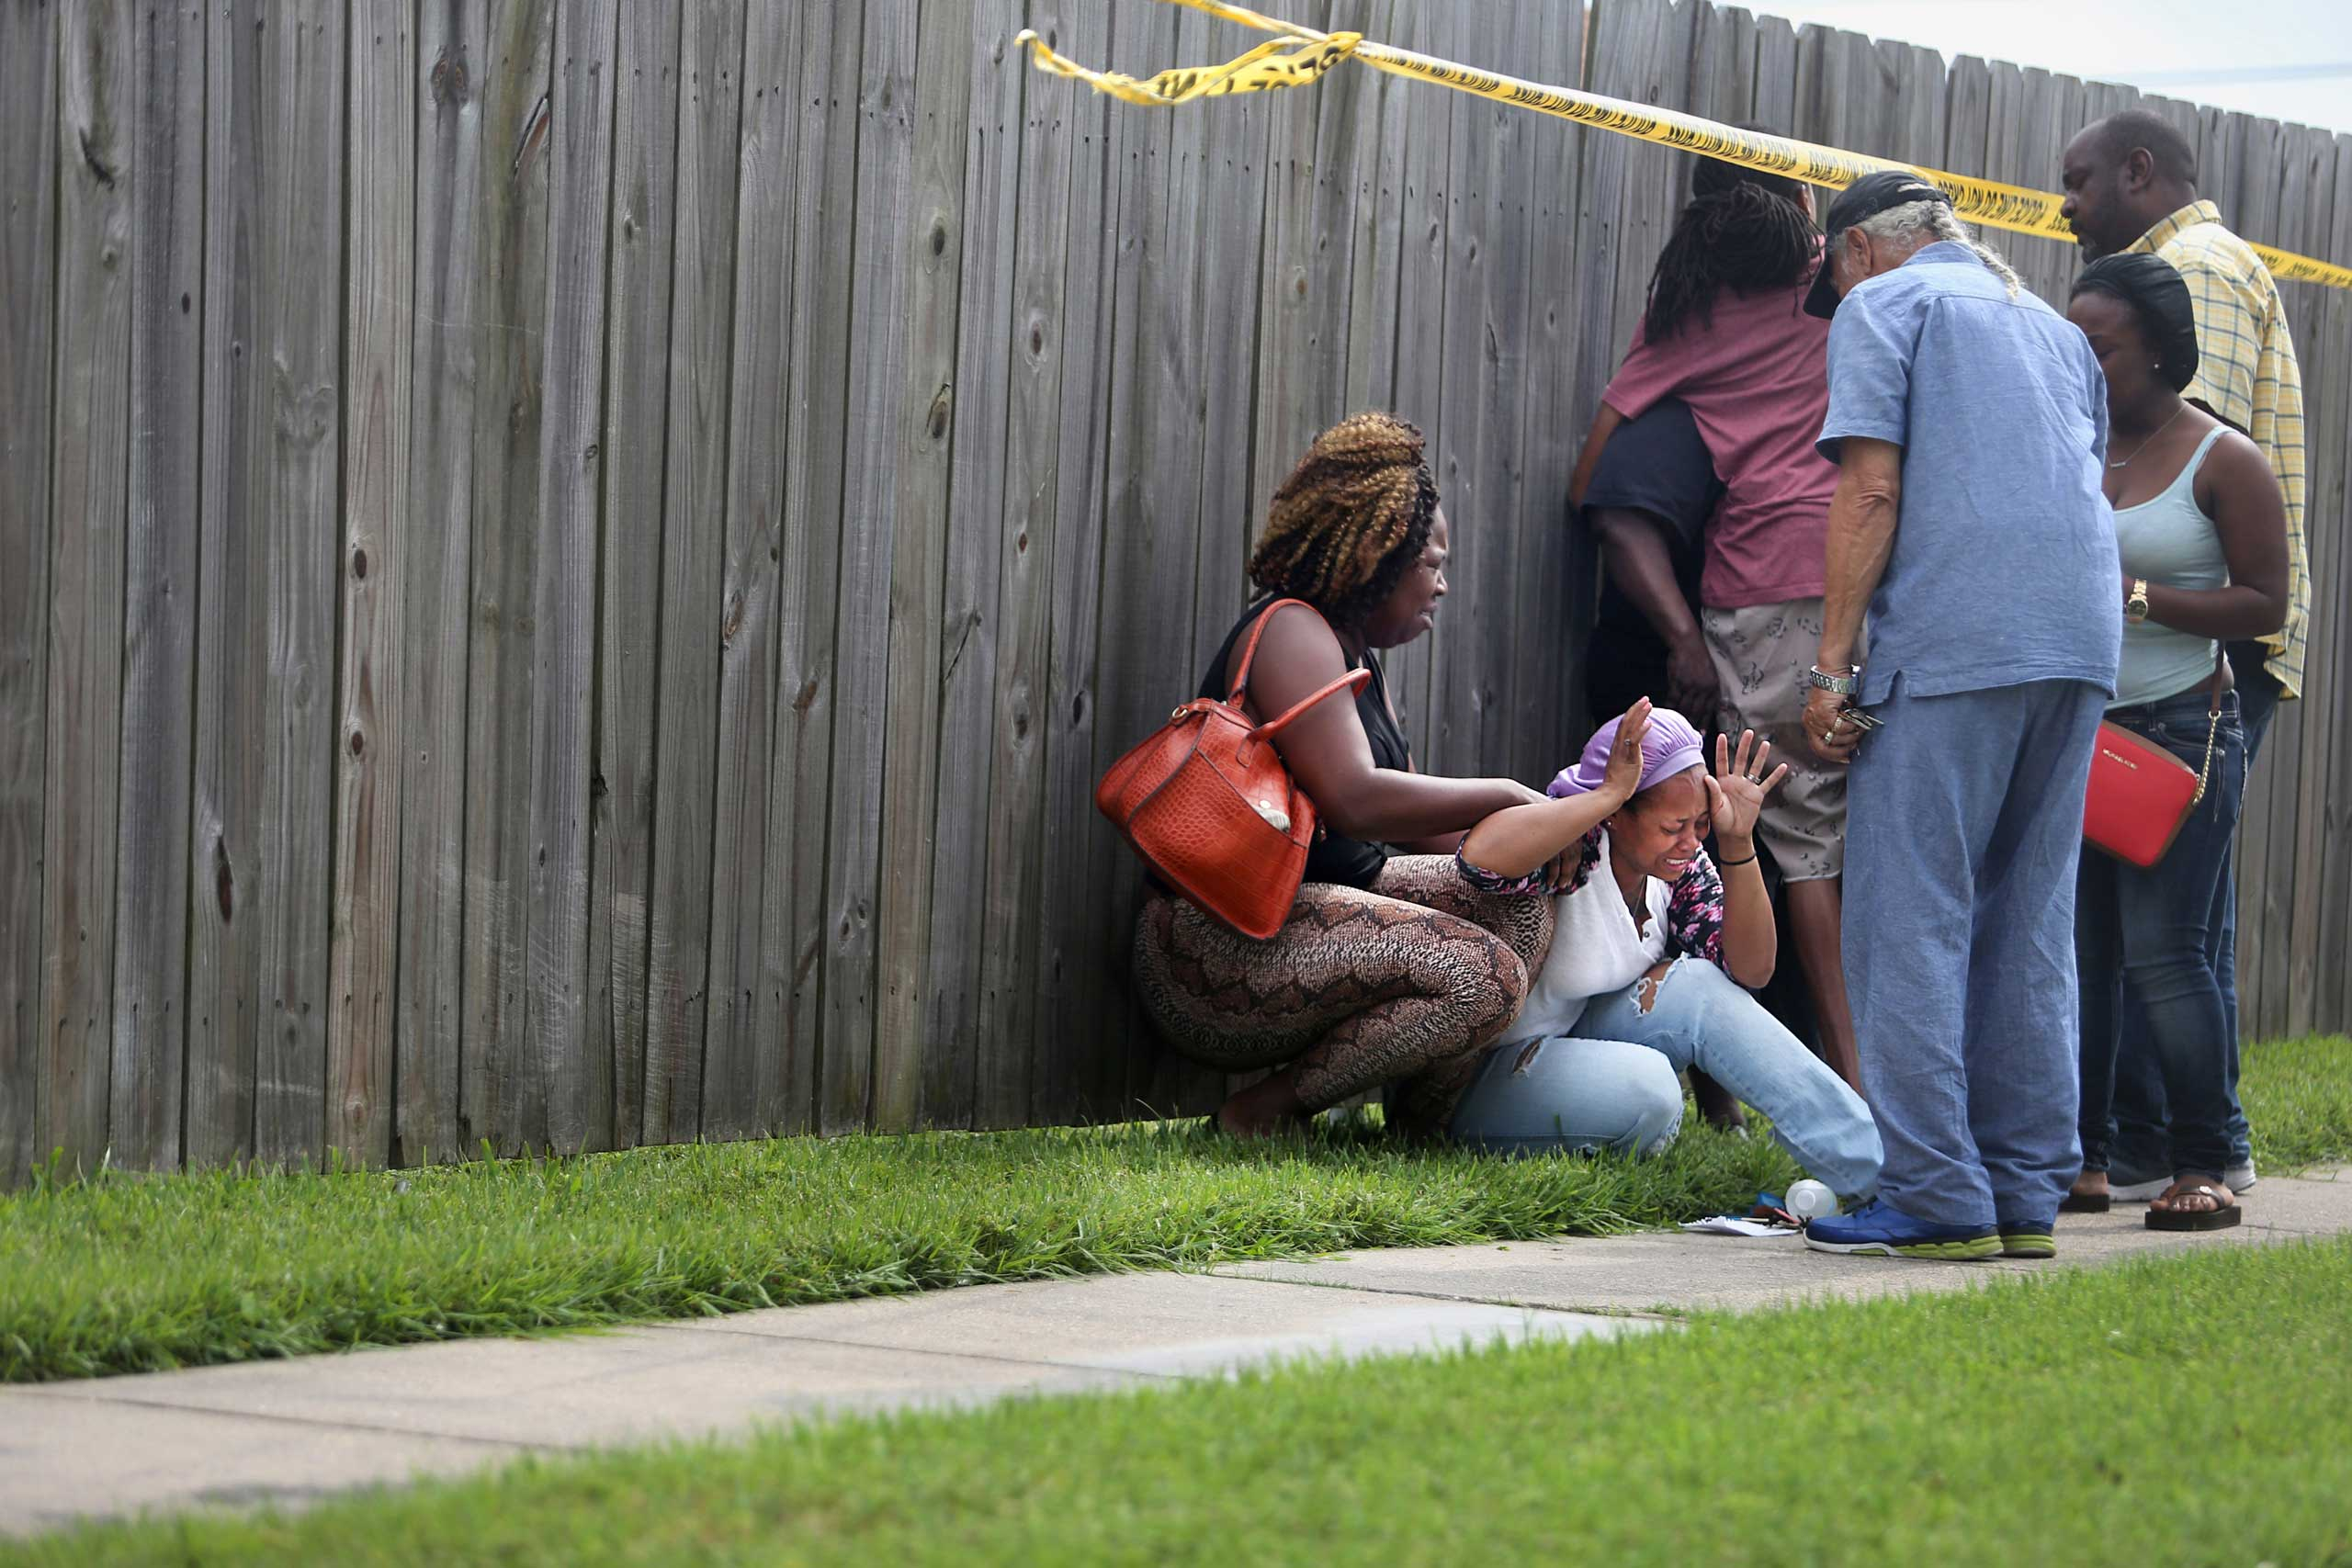 The mother of two men killed in a double homicide in eastern New Orleans reacts after confirmation of their identities came from police. New Orleans, La. May 25, 2015.